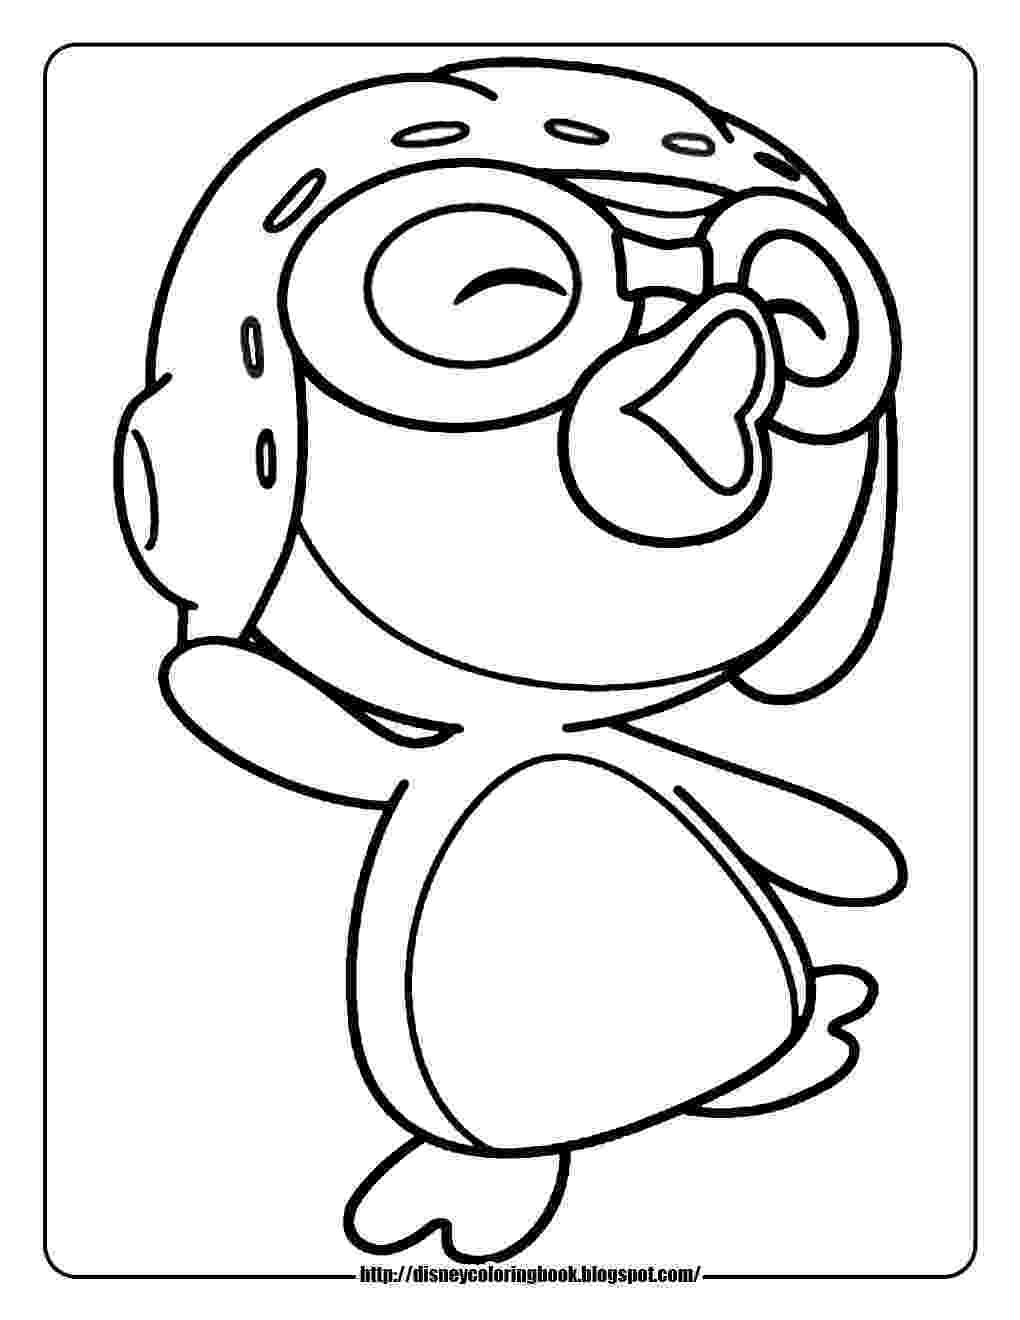 penguin printable coloring pages printable penguin coloring pages for kids cool2bkids coloring printable pages penguin